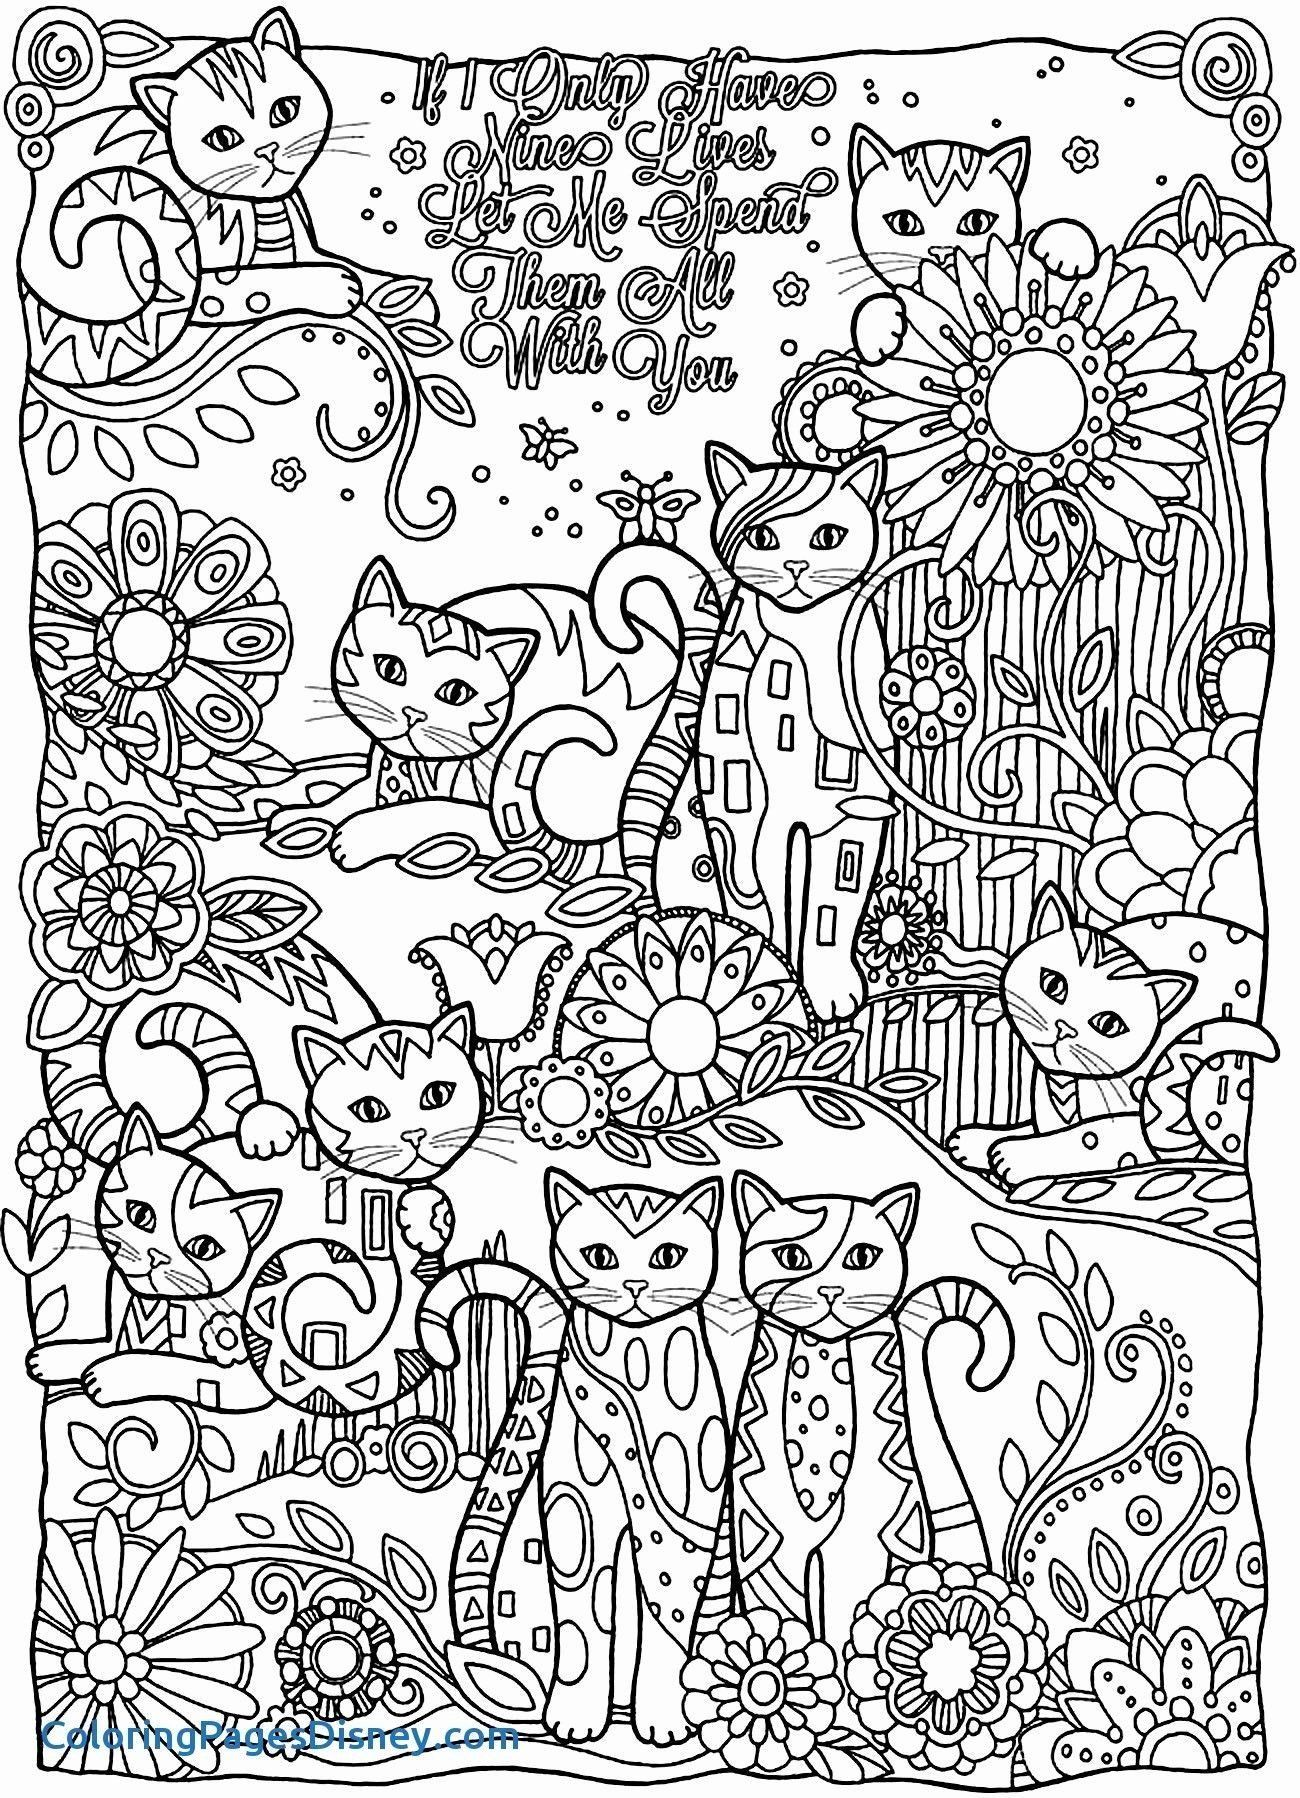 Coloring Pages Games Free Online Inspirational Elegant Coloring Games Line Disney Coloring